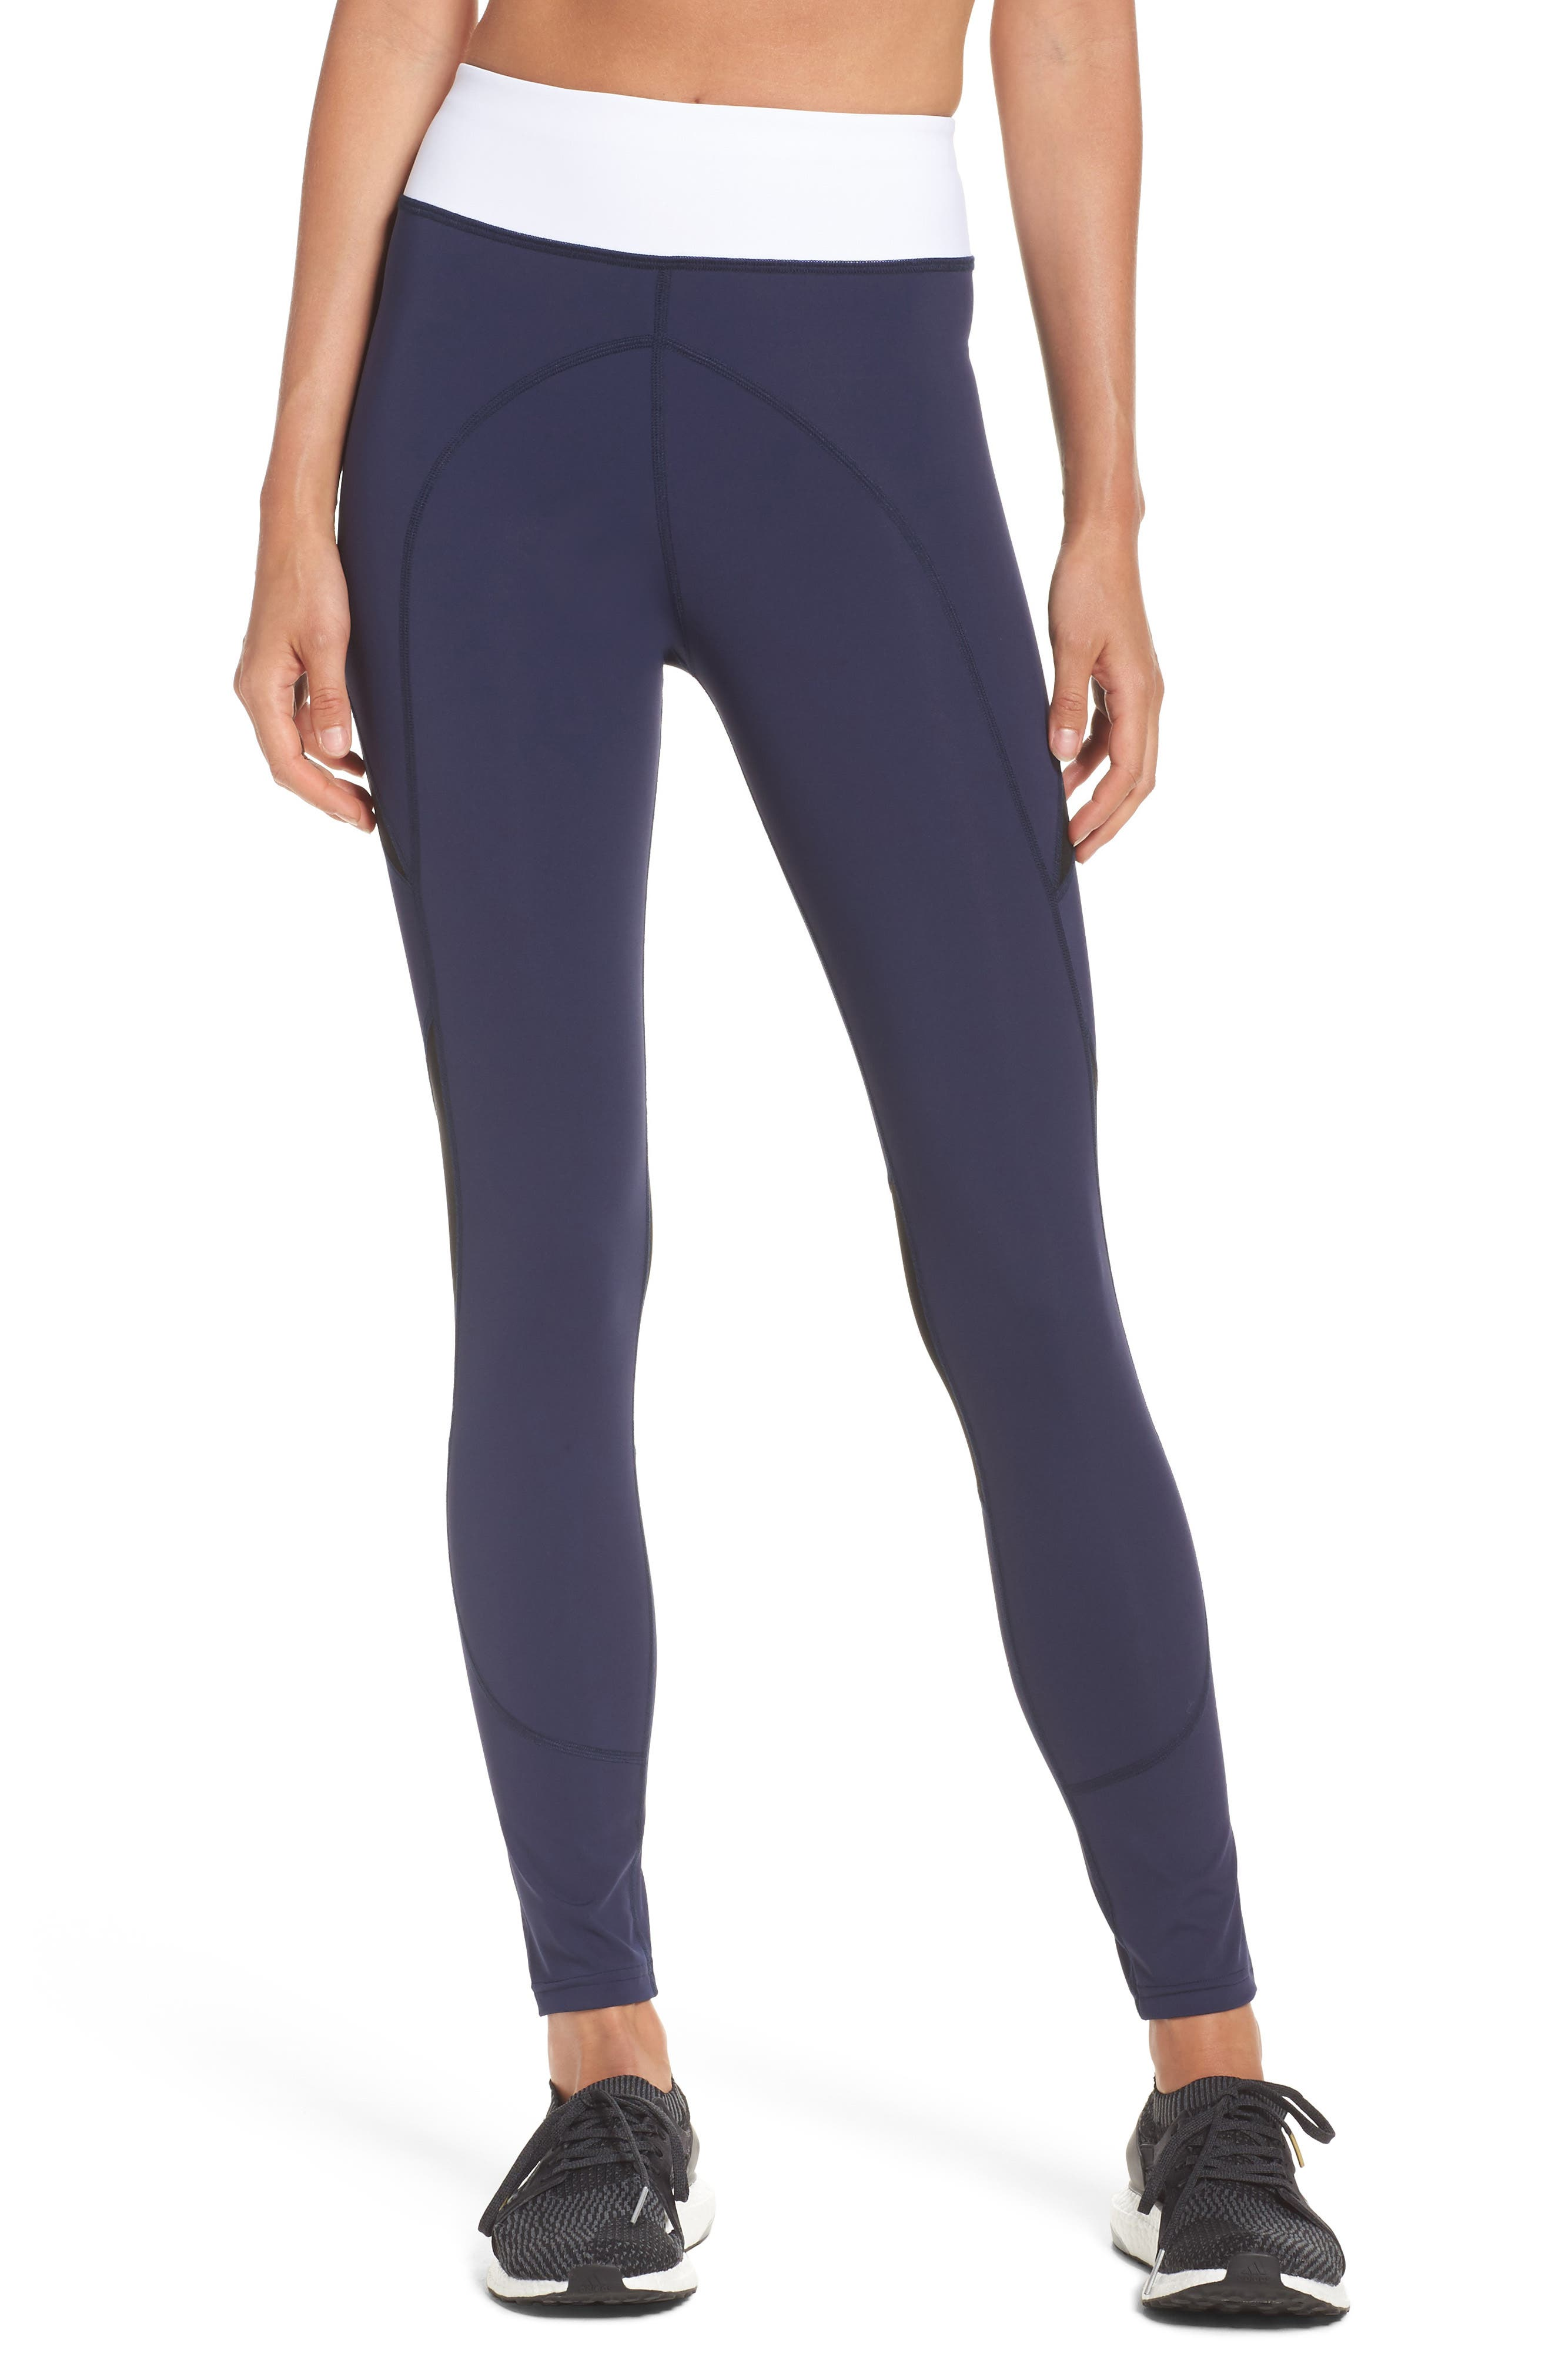 BoomBoom Athletica Leggings